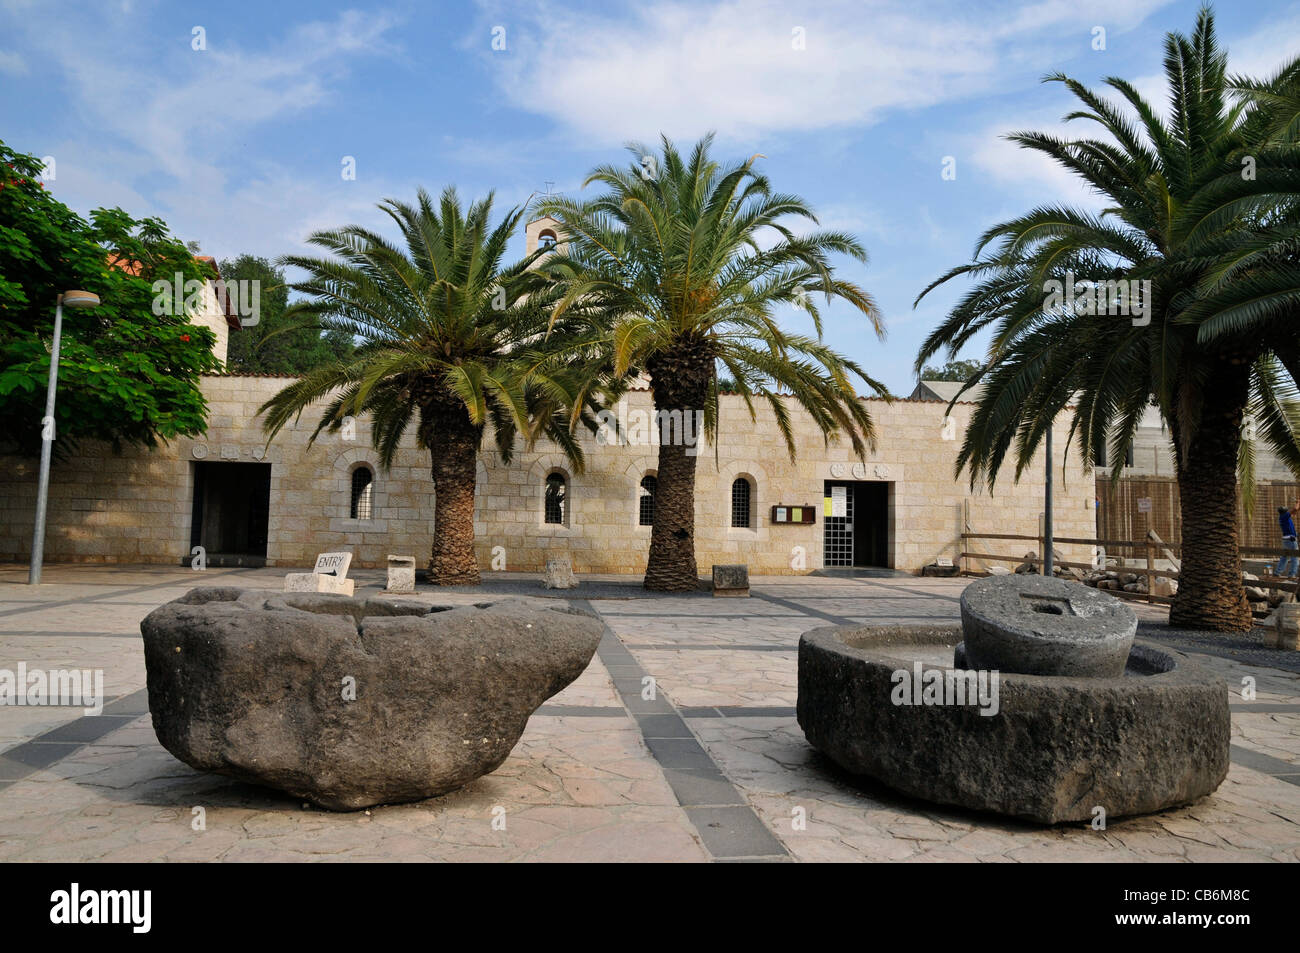 Tabgha Church Of The Multiplication with Olive Oil Press in front, Galilee, Israel - Stock Image